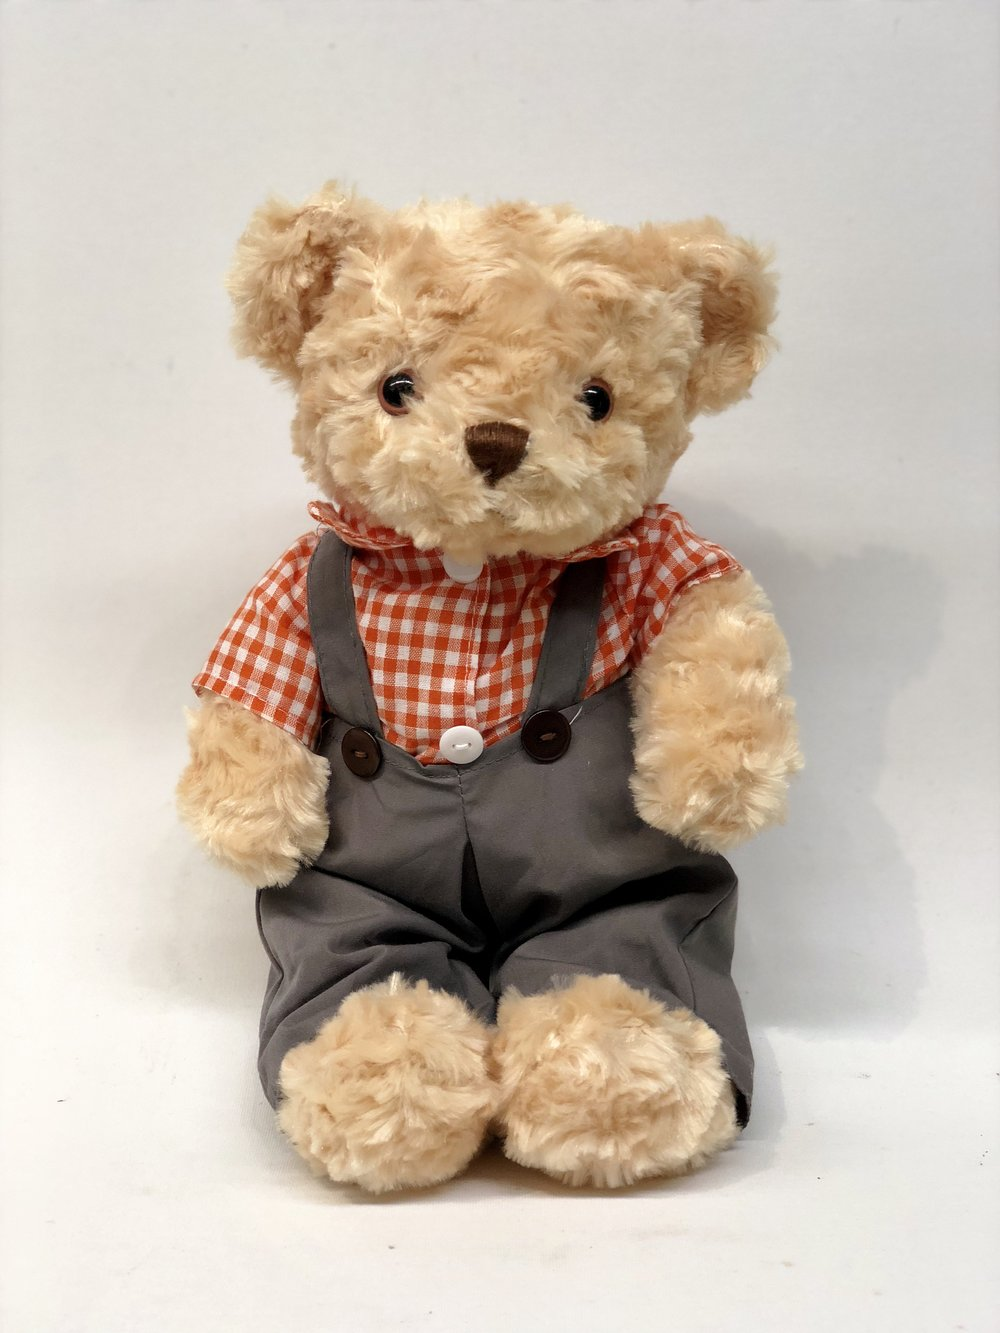 Overalls Teddy Bear -